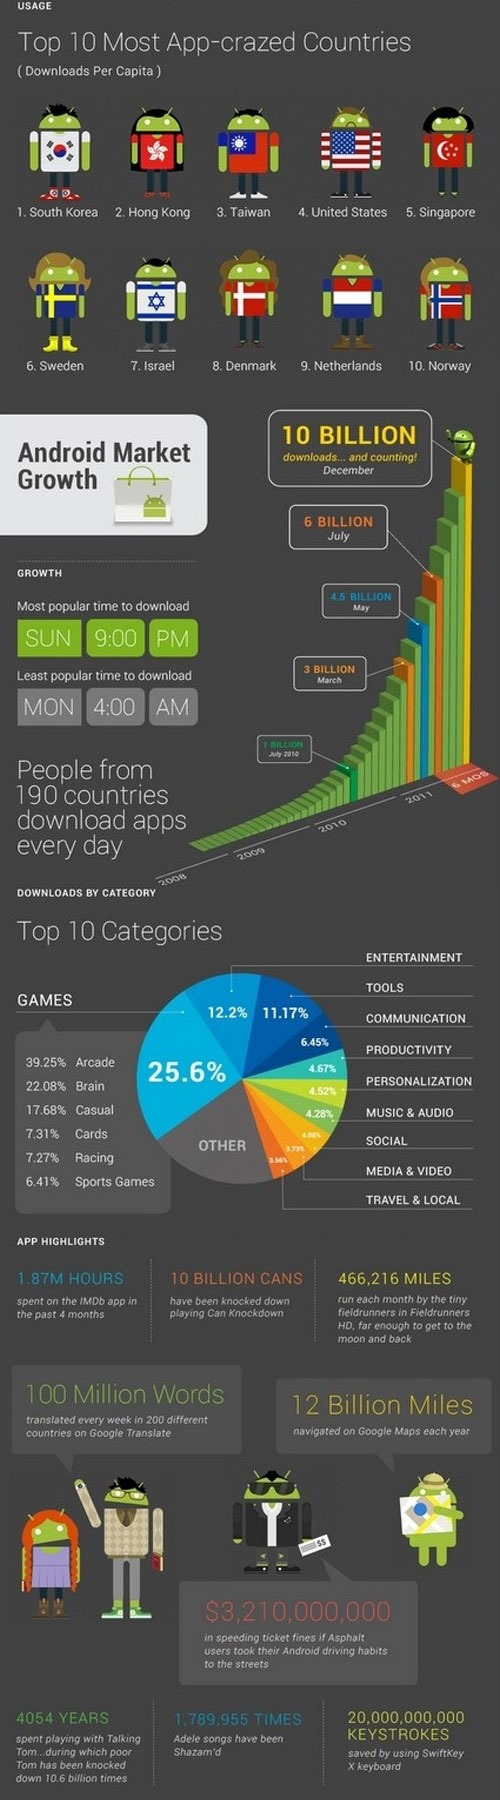 Top 10 Android App Crazy Countries [Infographic]